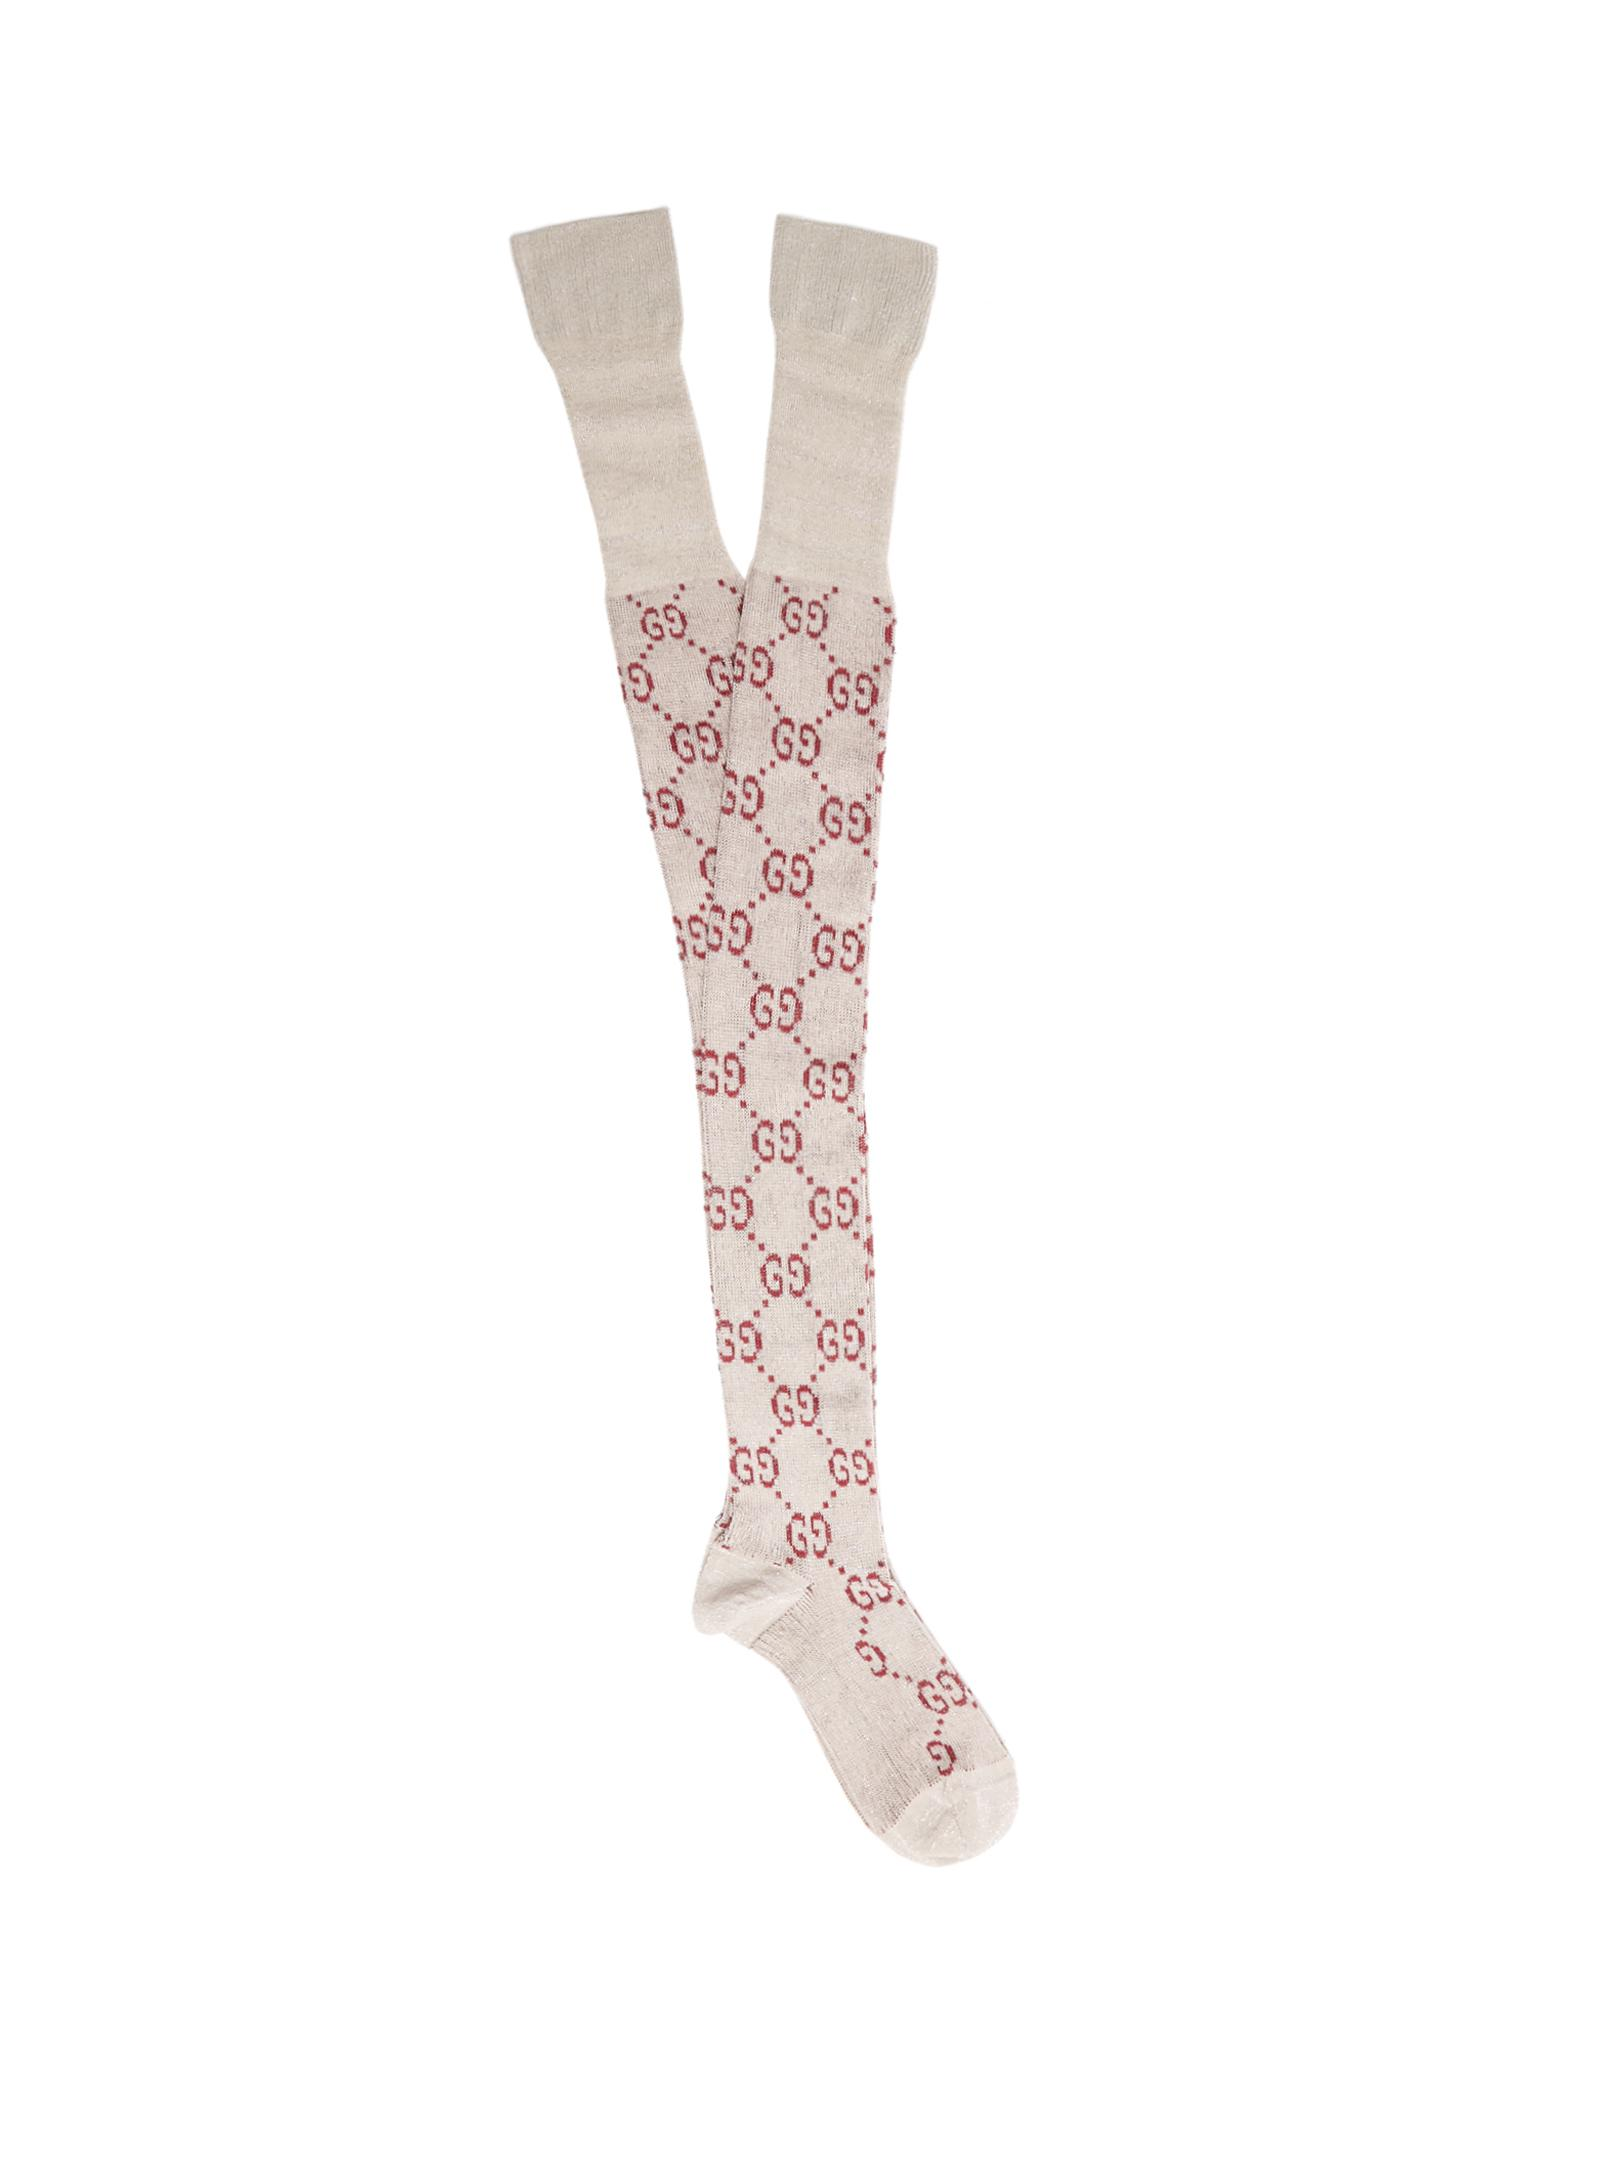 9c13300a7c8 Lyst - Gucci Gg Cotton-blend Over-the-knee Socks in White